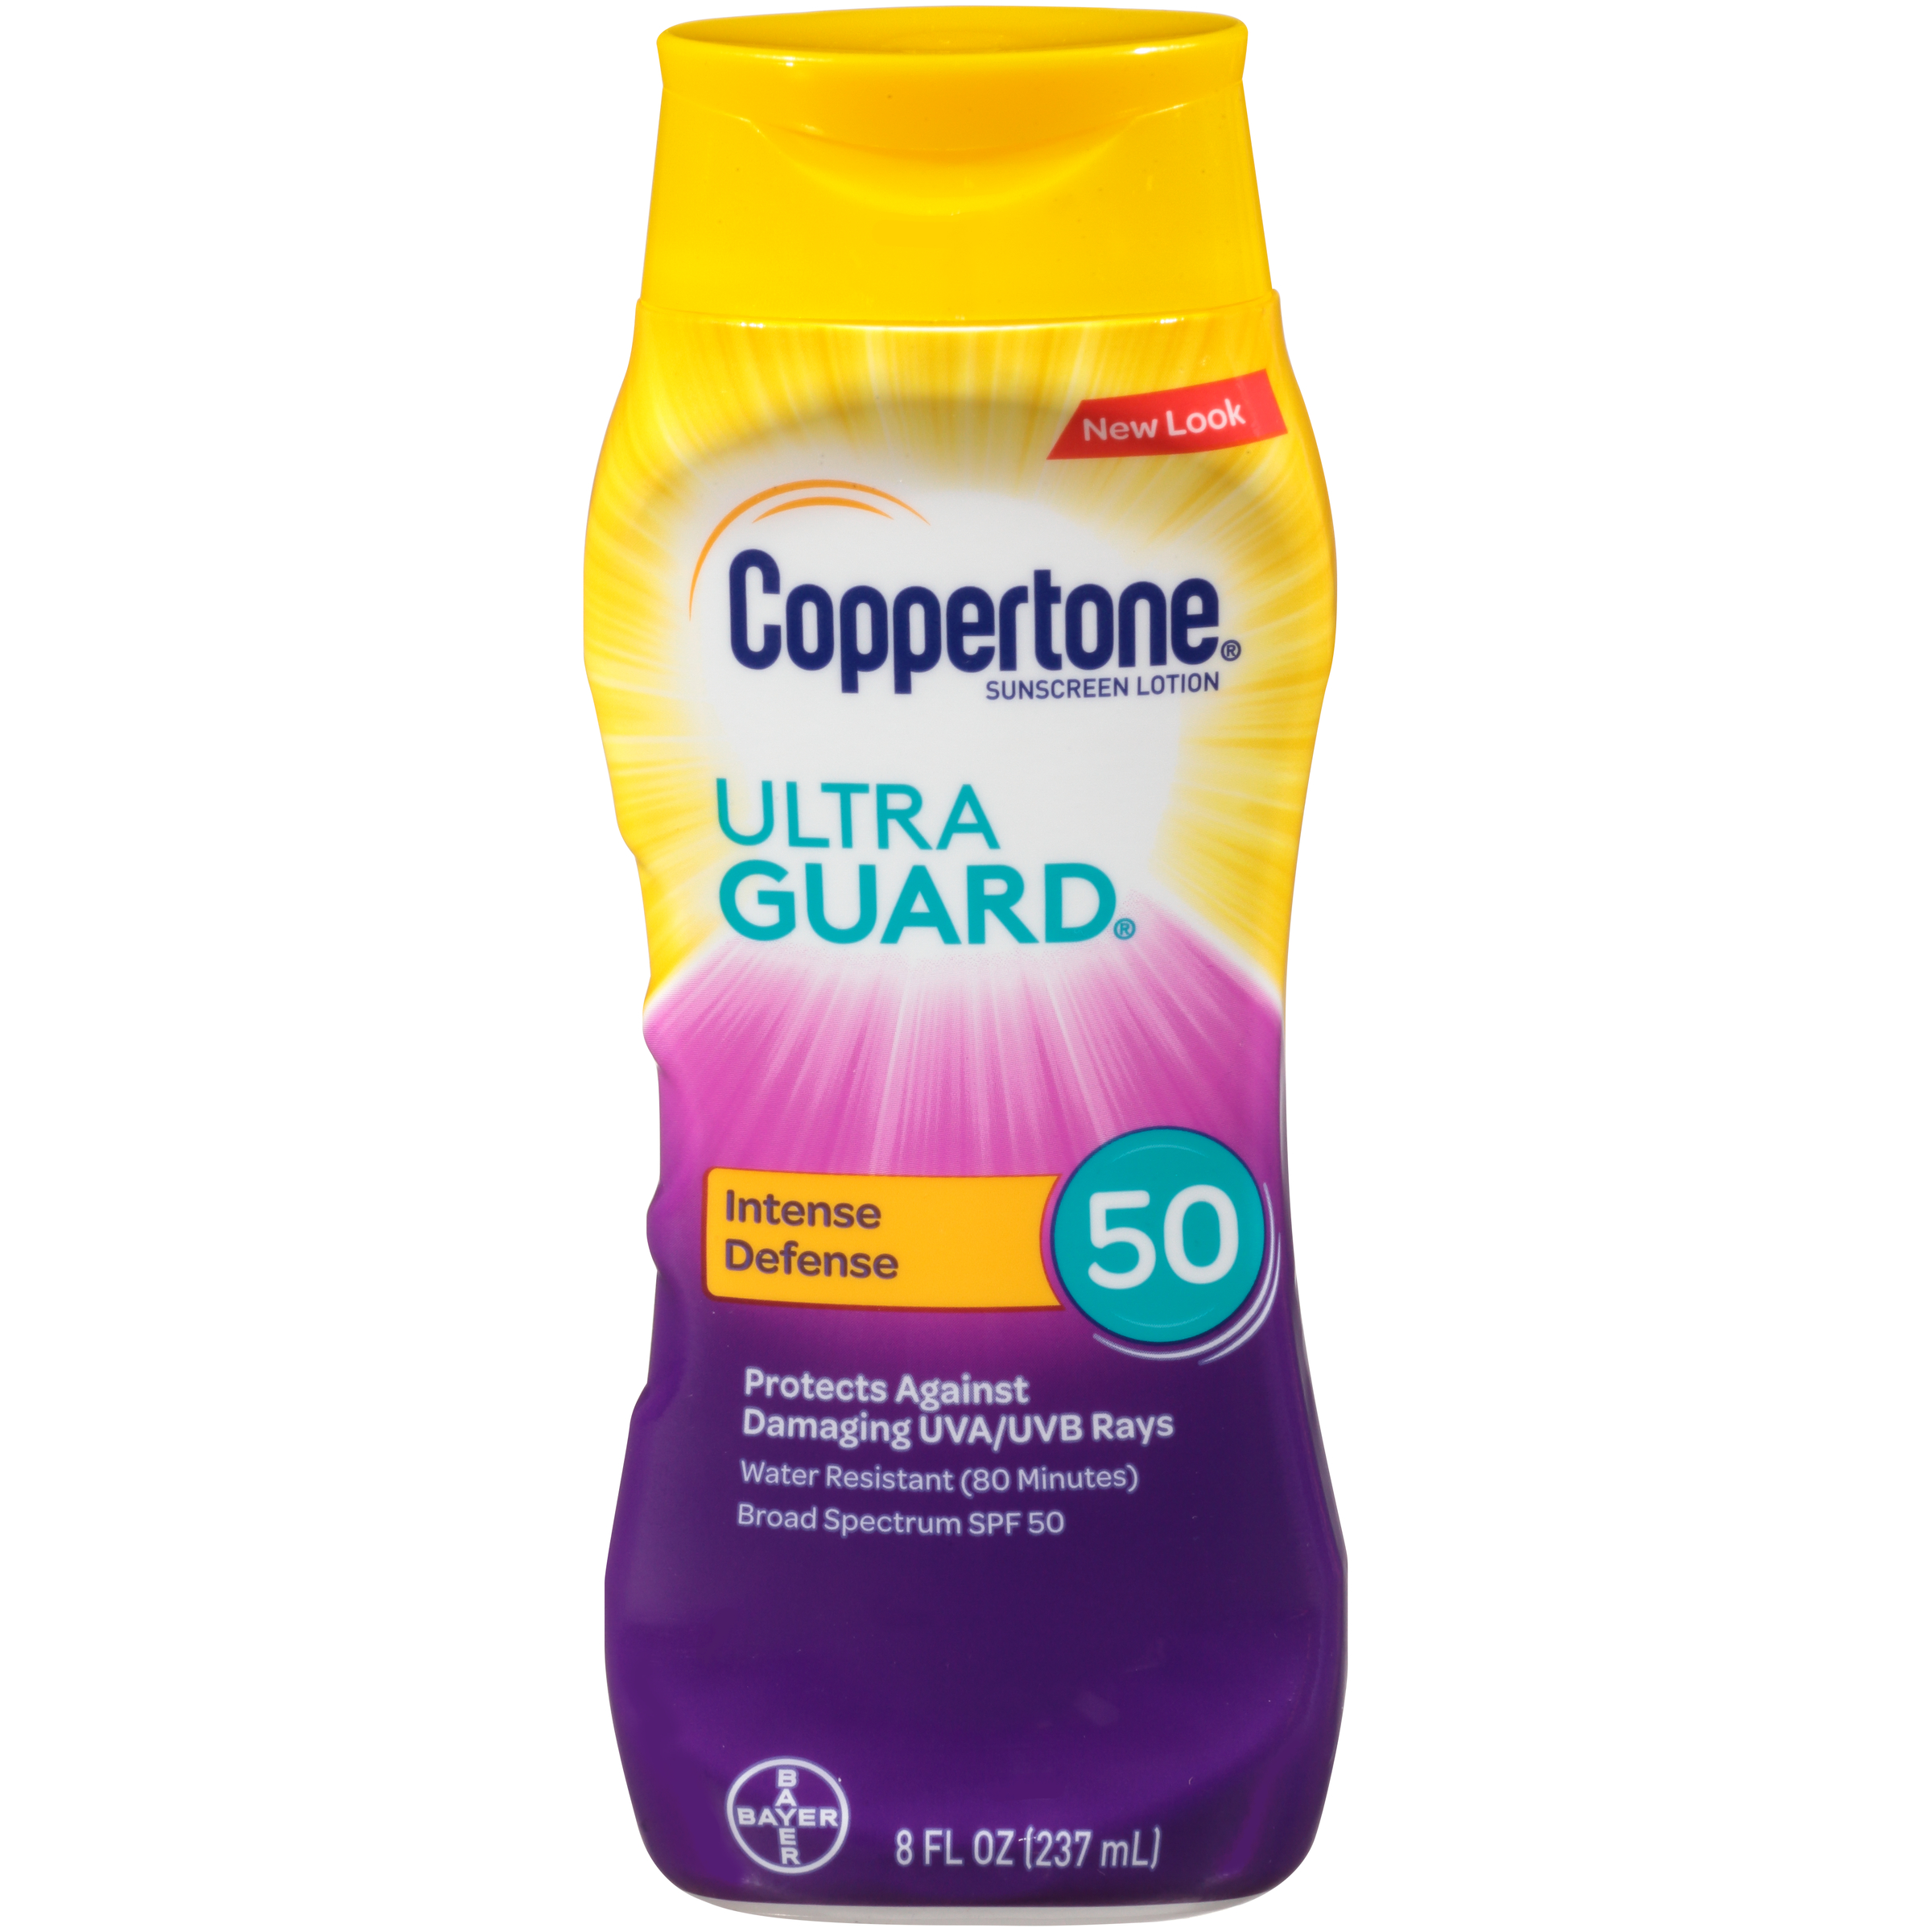 Coppertone Ultra Guard Sunscreen Lotion SPF 50, 8 fl oz